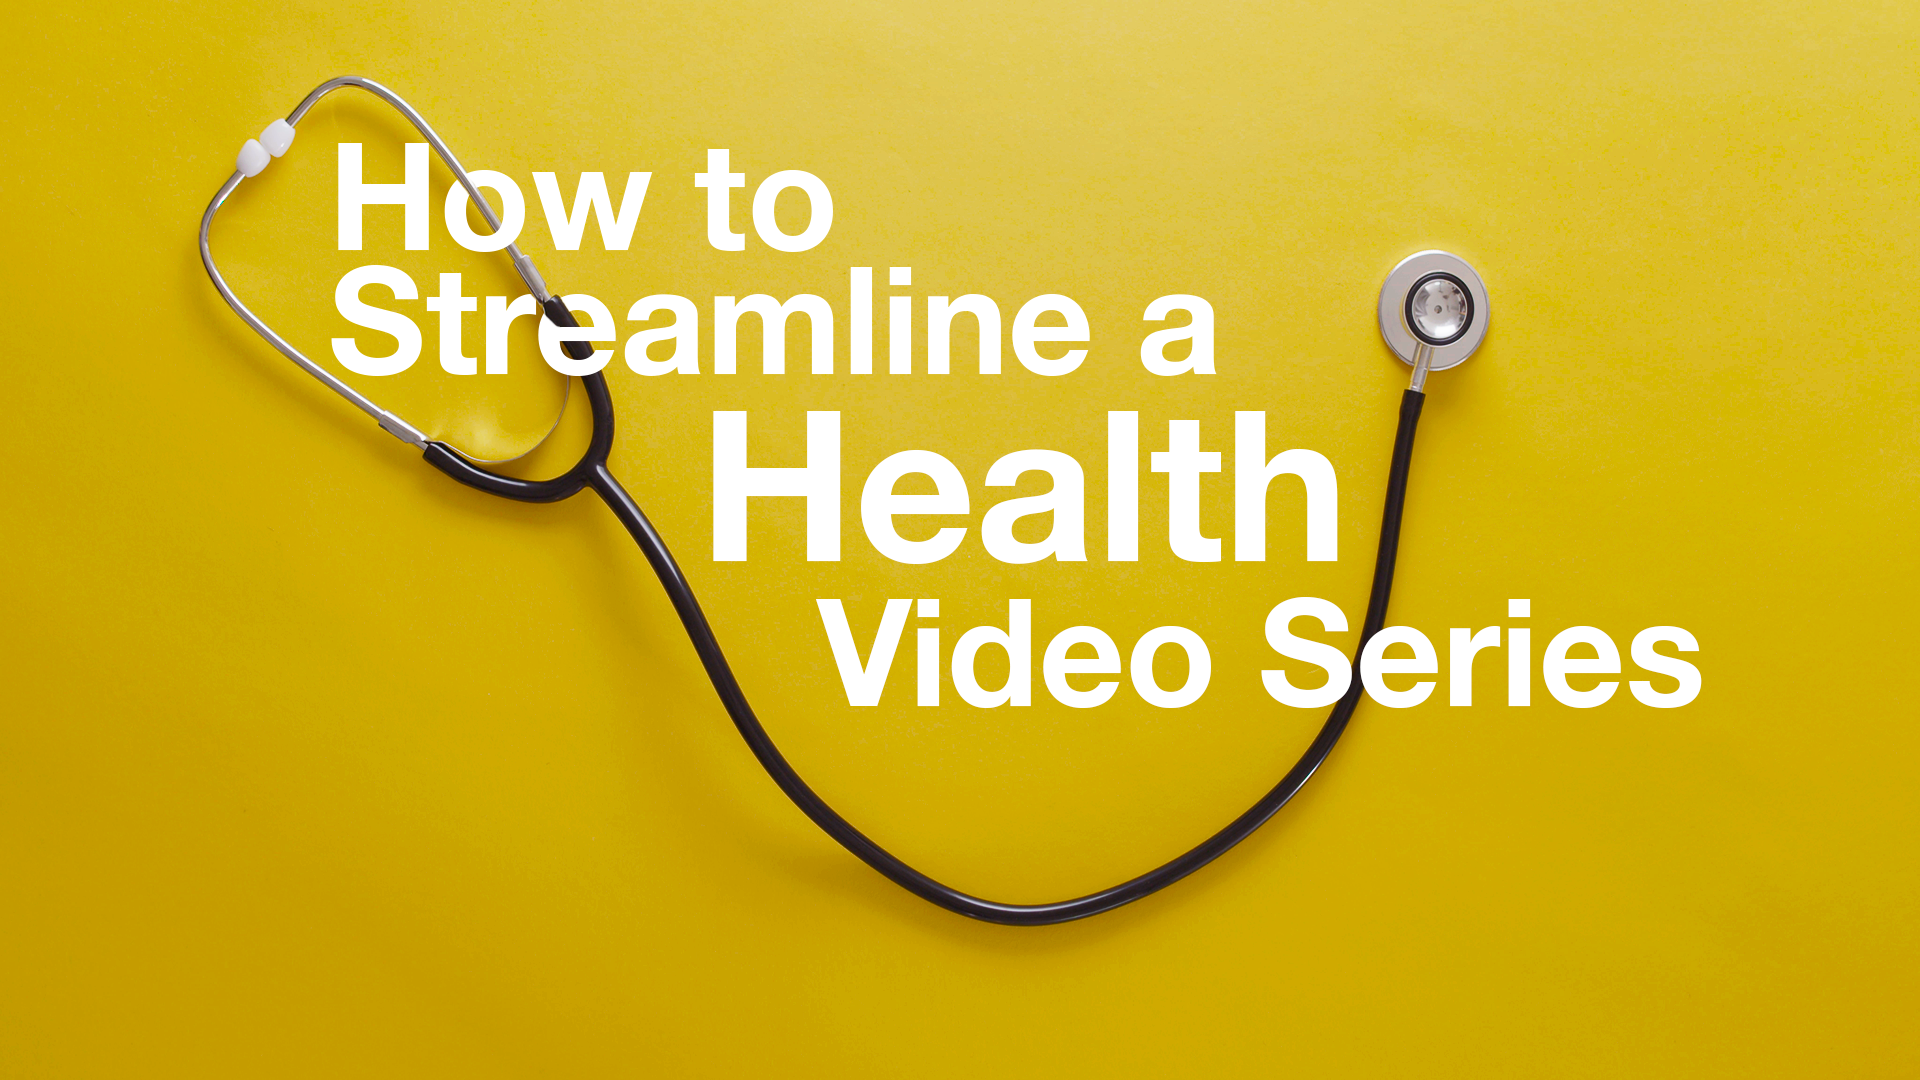 How To Streamline a Health Video Series